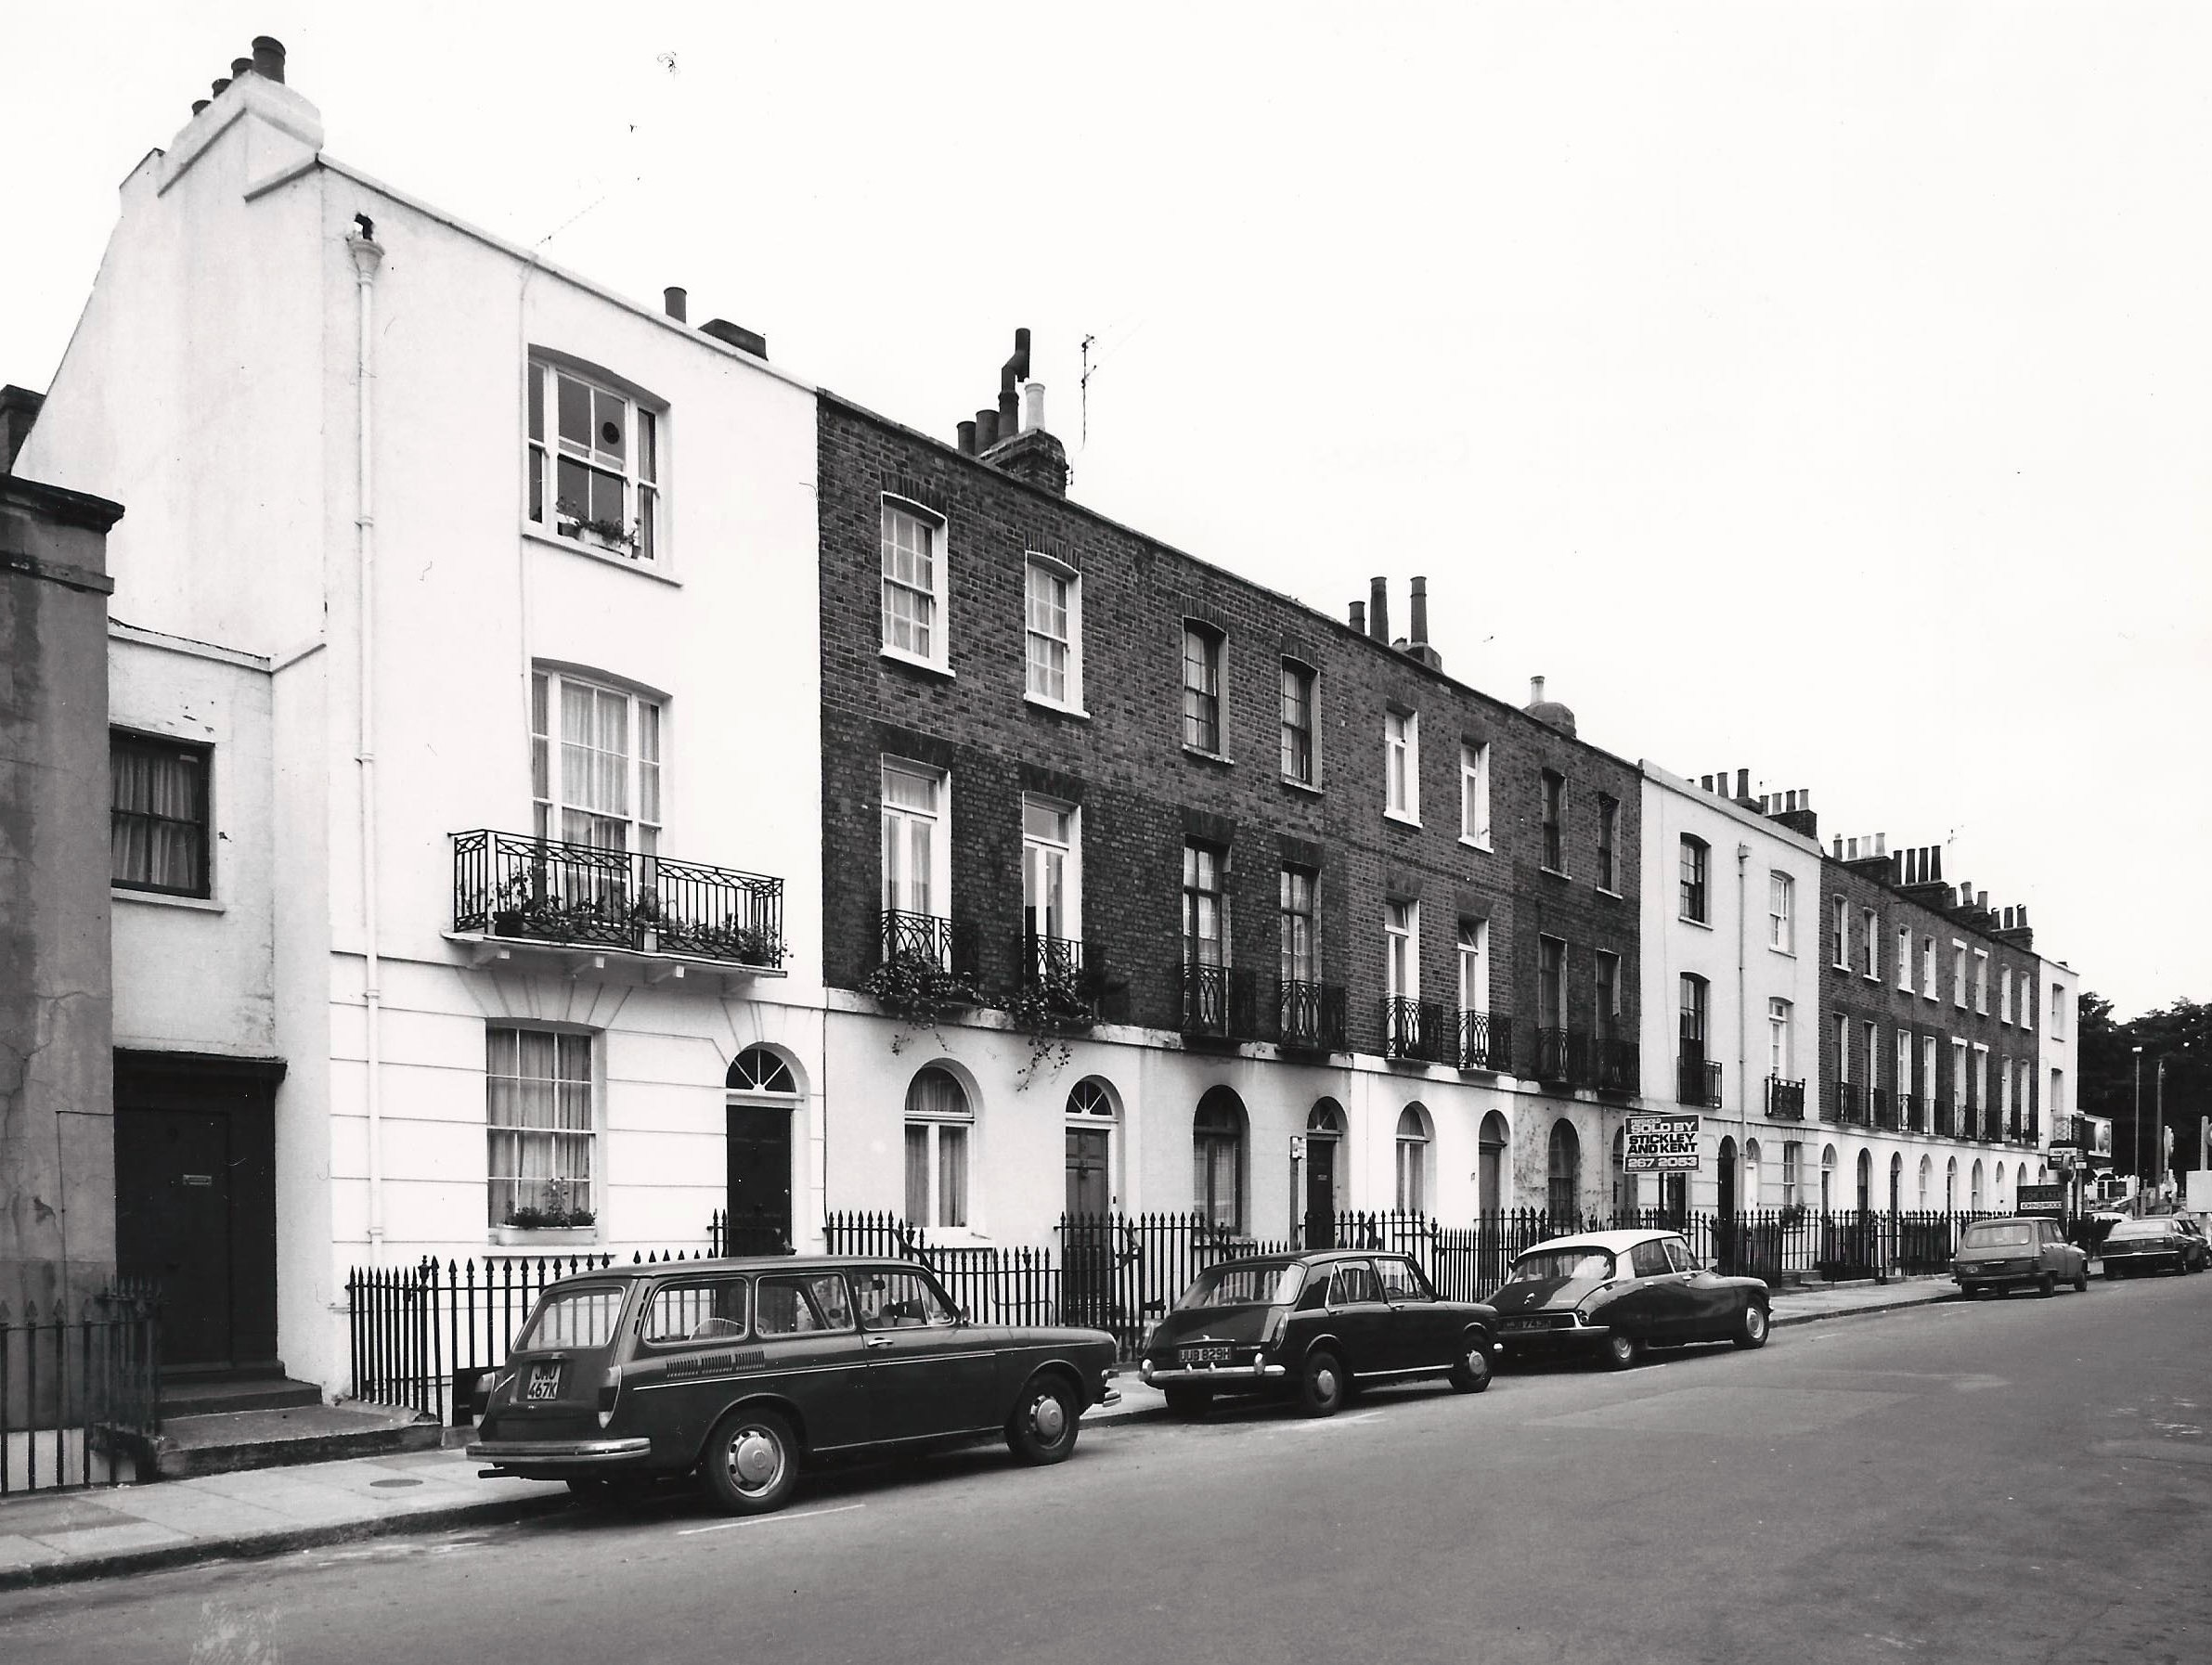 Jeffreys St in 1975 Credit: Historic England archive